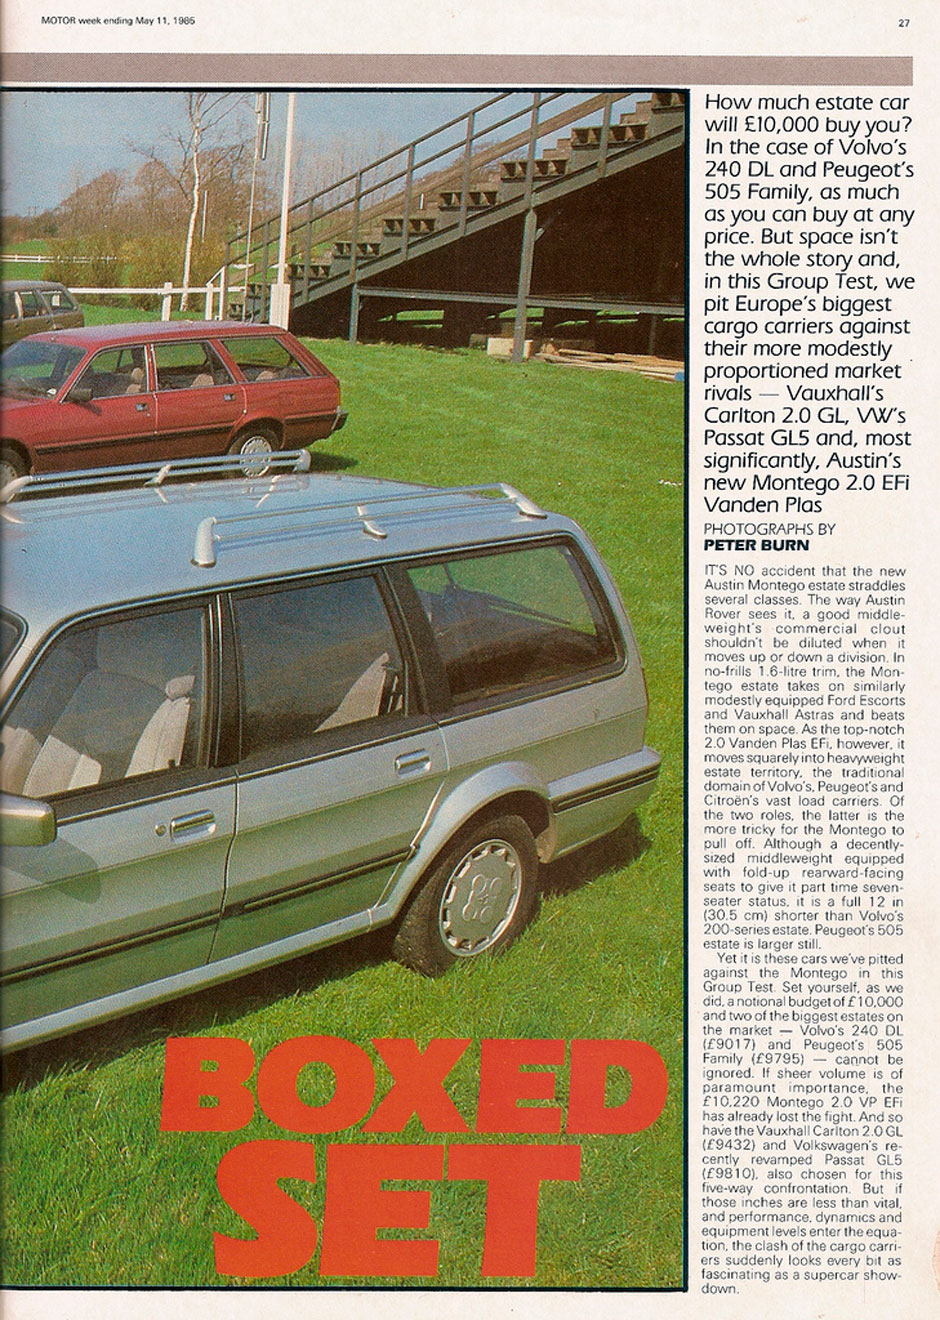 Volvo 240 Estate, Peugeot 505 Family, Vauxhall Carlton Estate, VW Passat Wagon, Austin Montego Estate